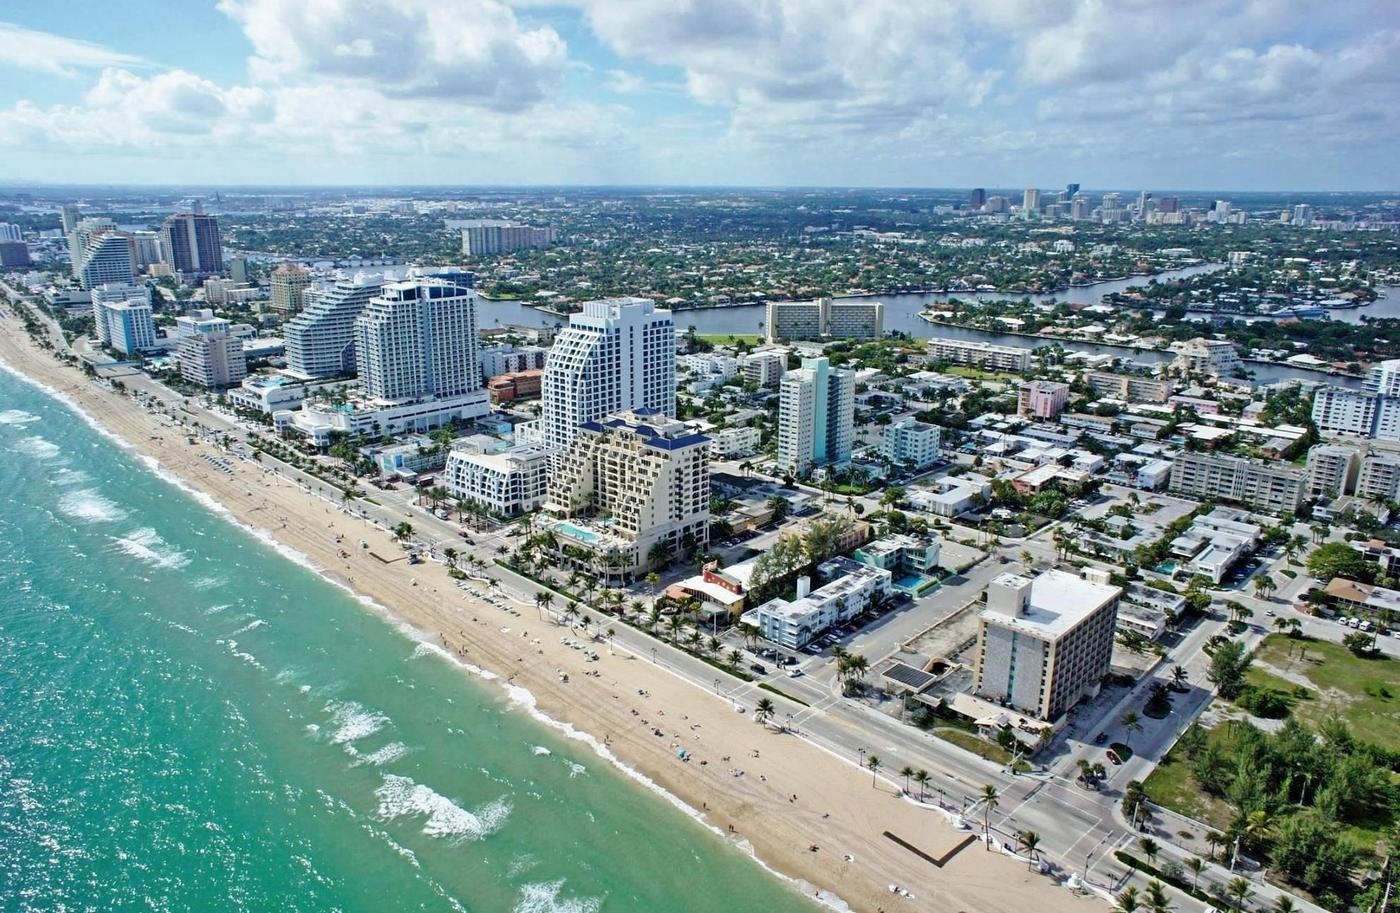 An Insiders Guide  Things to do in Fort Lauderdale